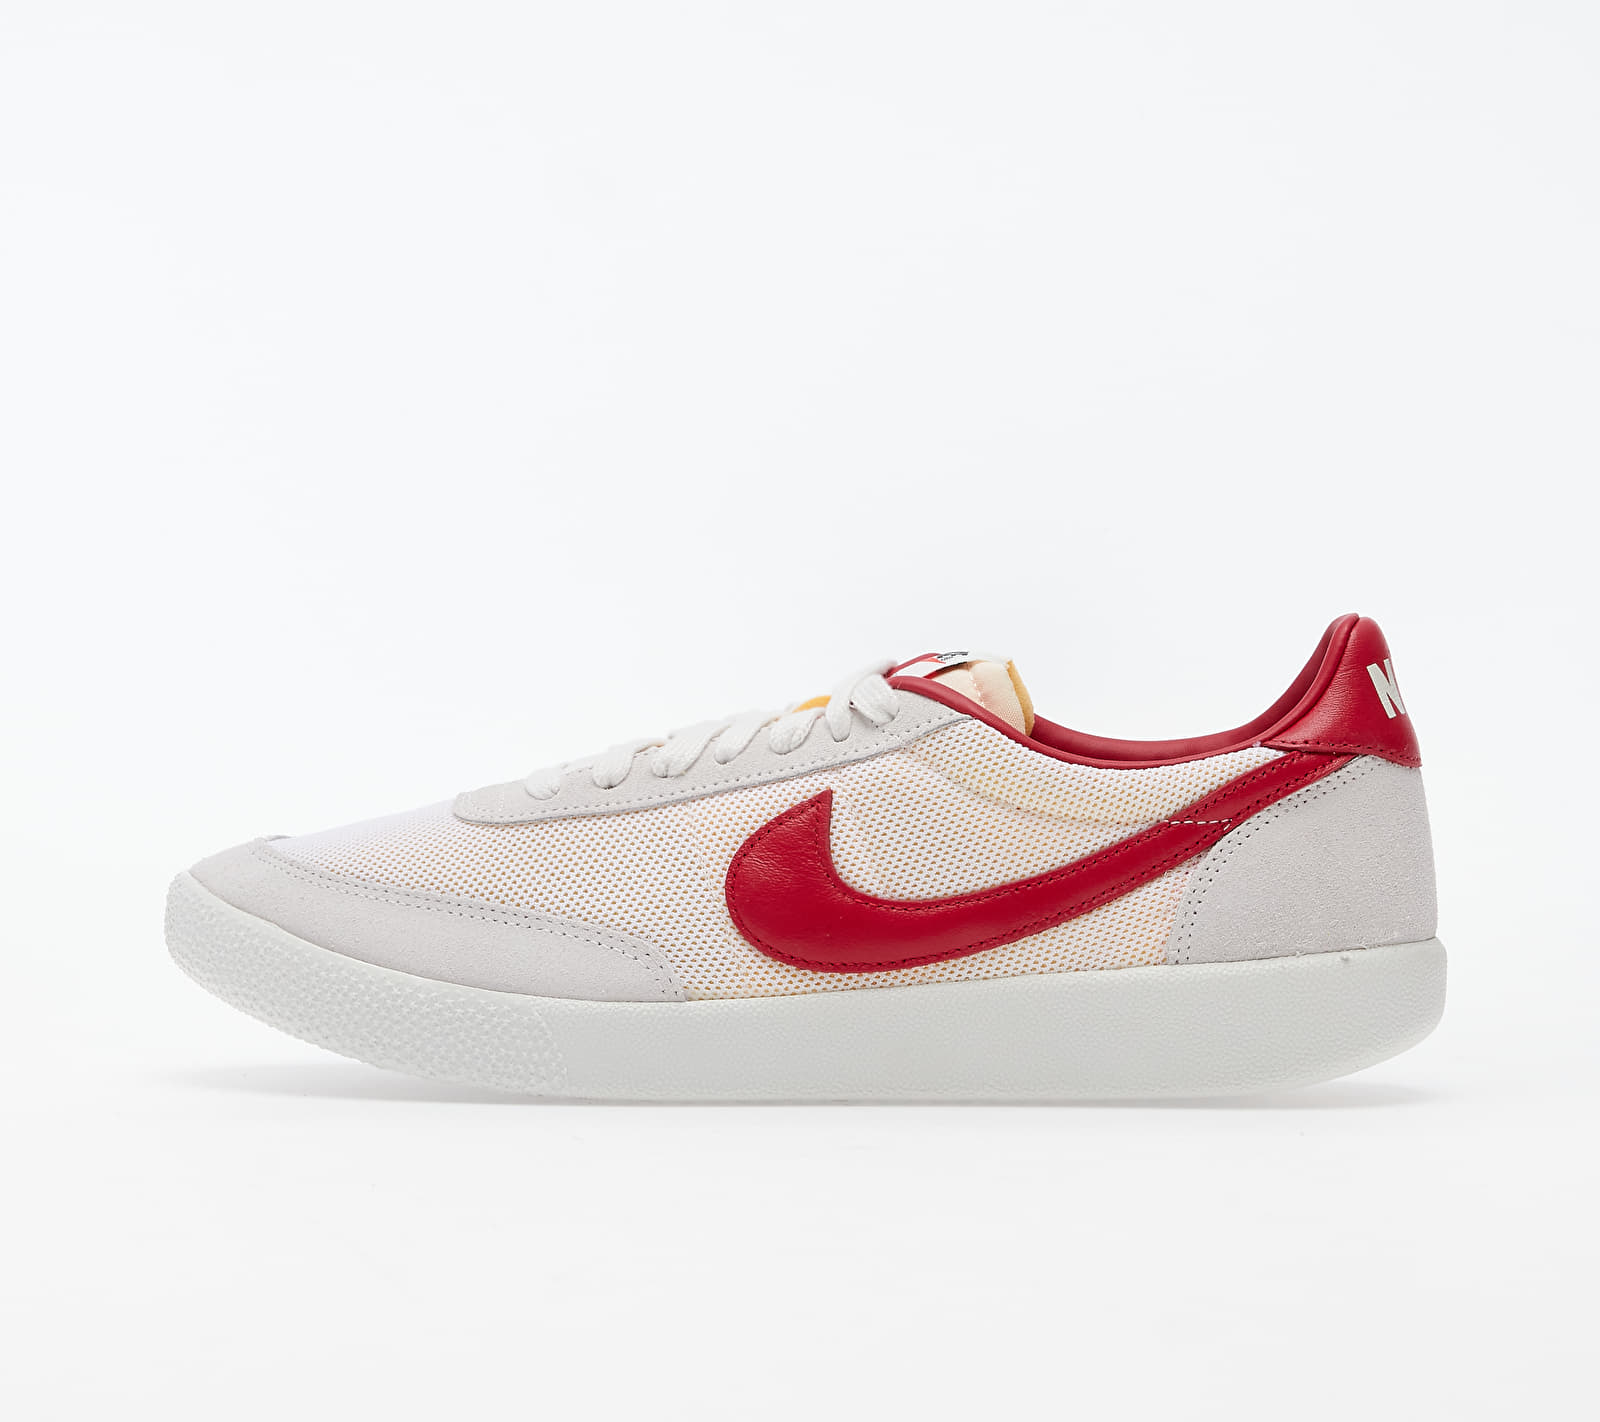 Nike Killshot OG SP Sail/ Gym Red CU9180-101